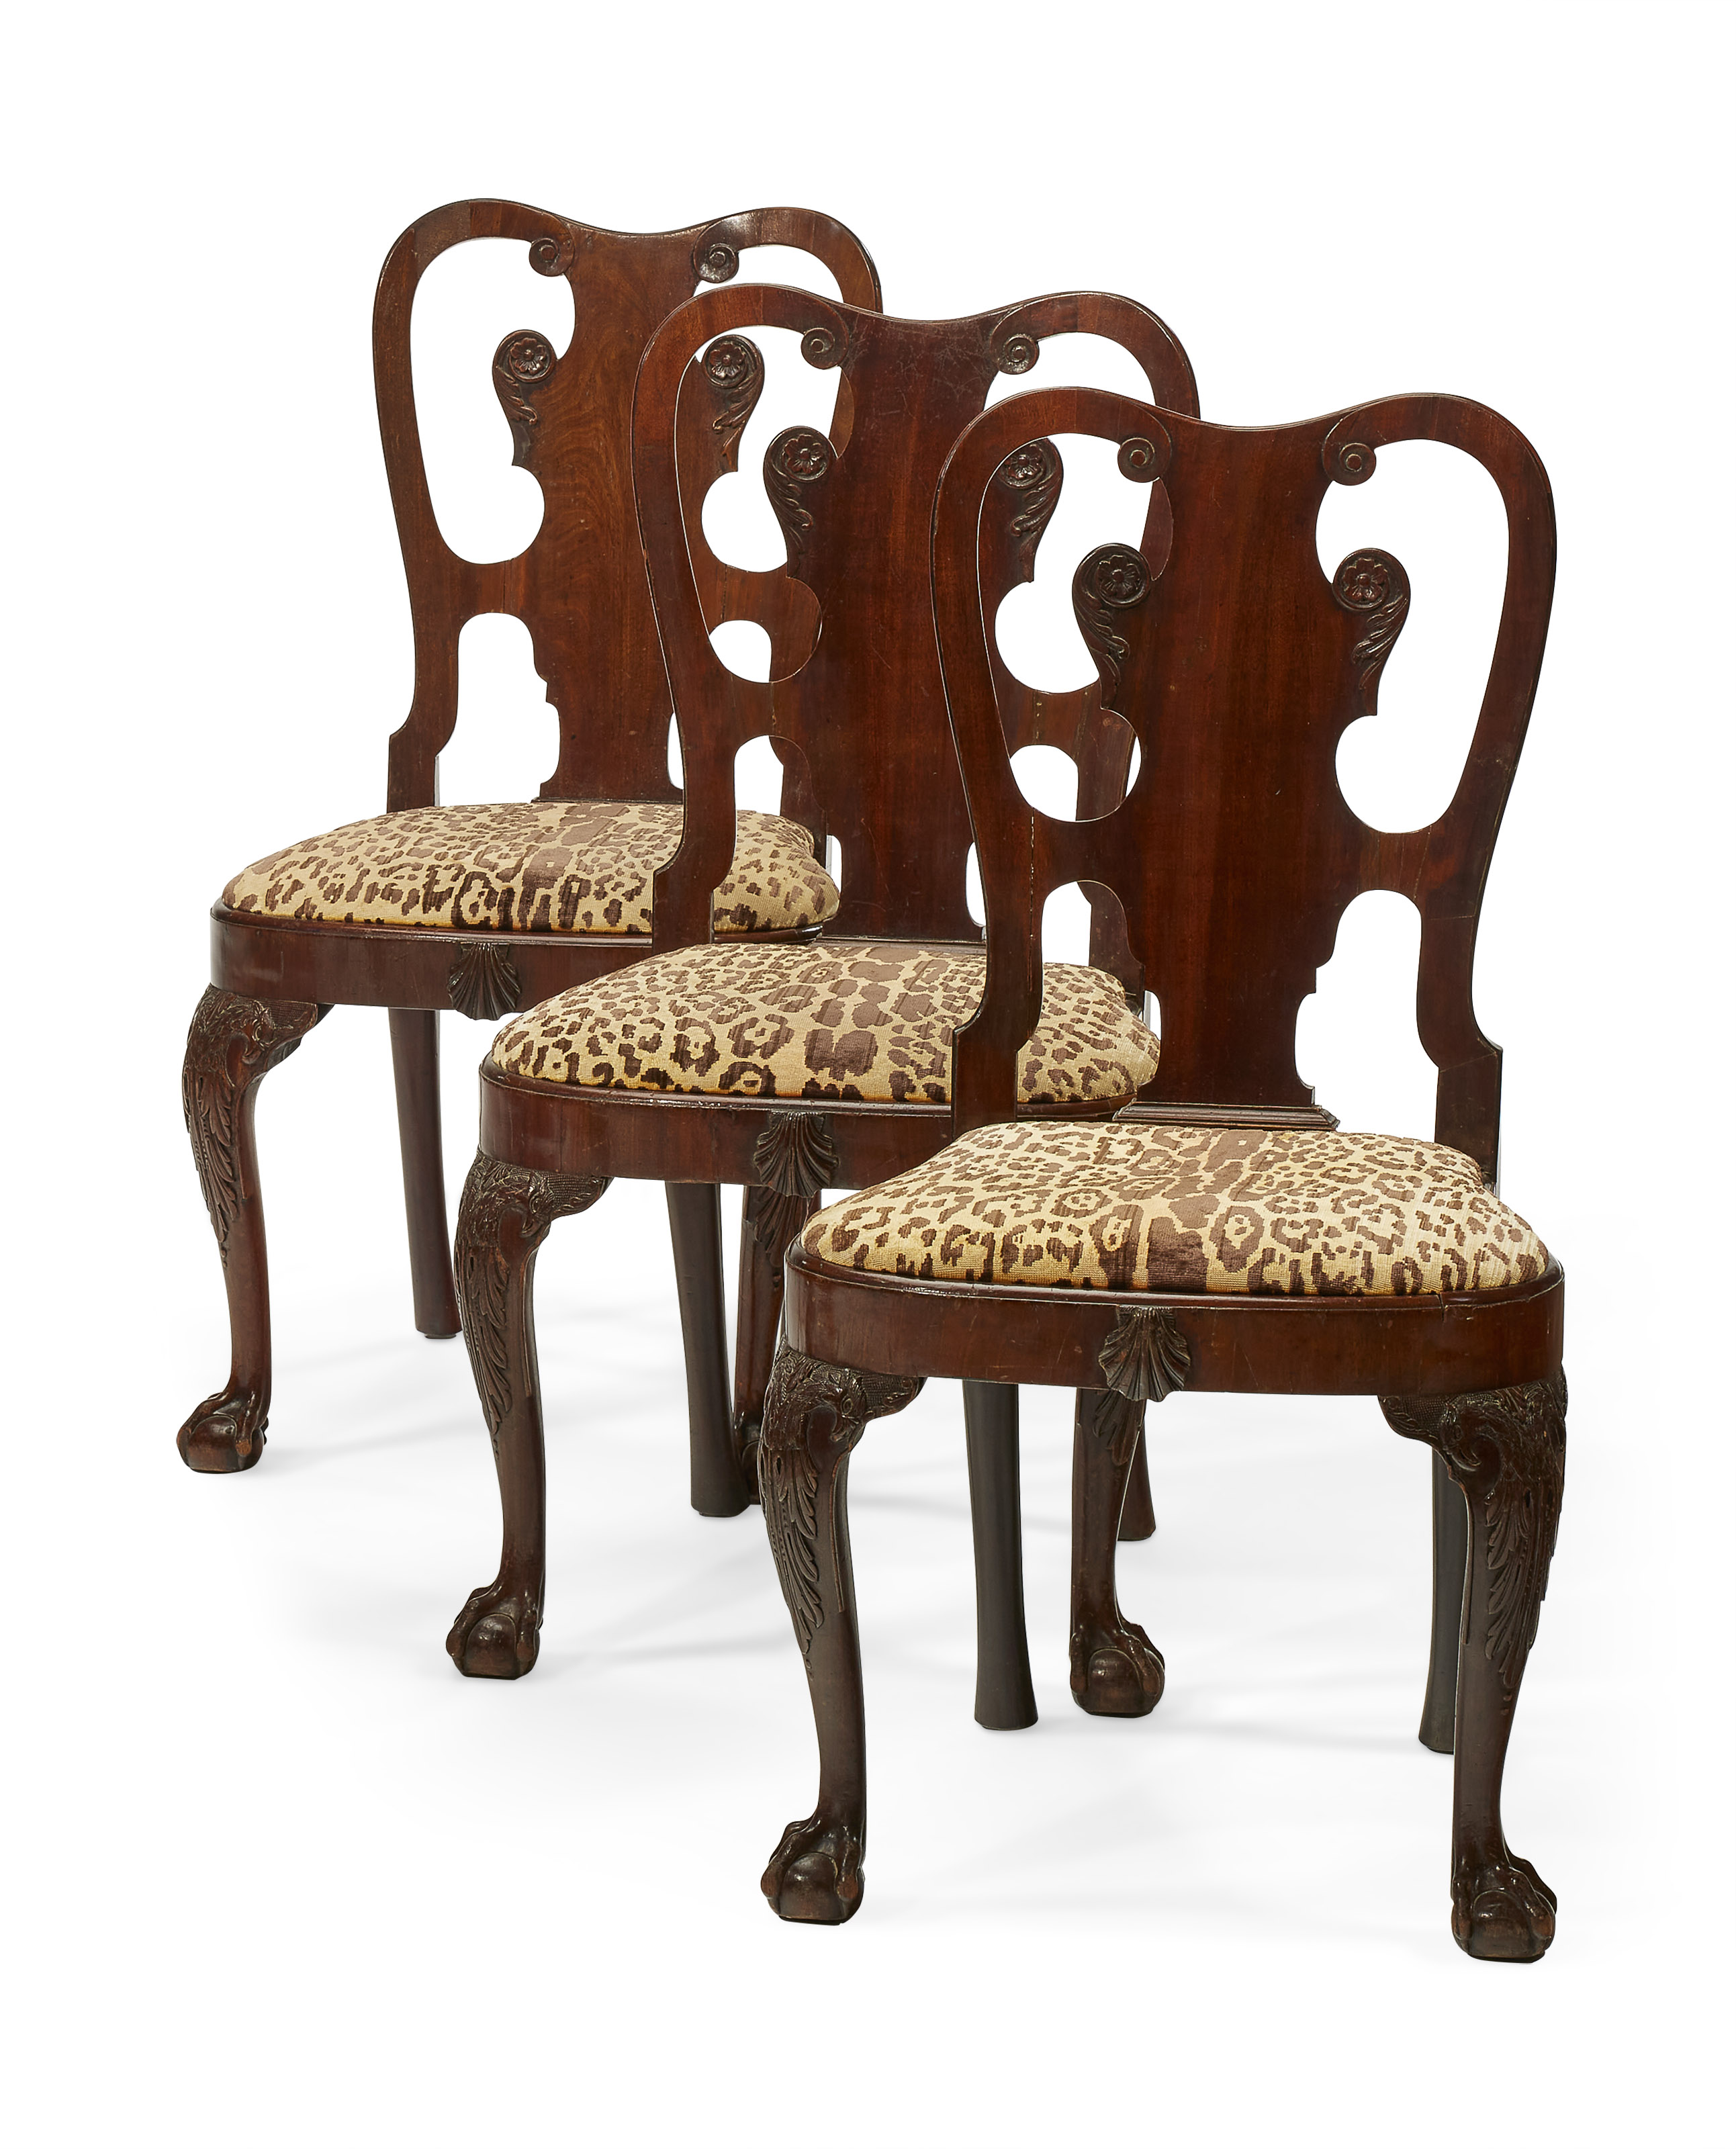 A set of three Irish George II mahogany side chairs, c. 1740.38½  in (98  cm) high. Estimate $4,000-6,000. Offered in The Collector English & European Furniture, Ceramics, Silver & Works of Art on 5-19 October 2021 at Christie's Online